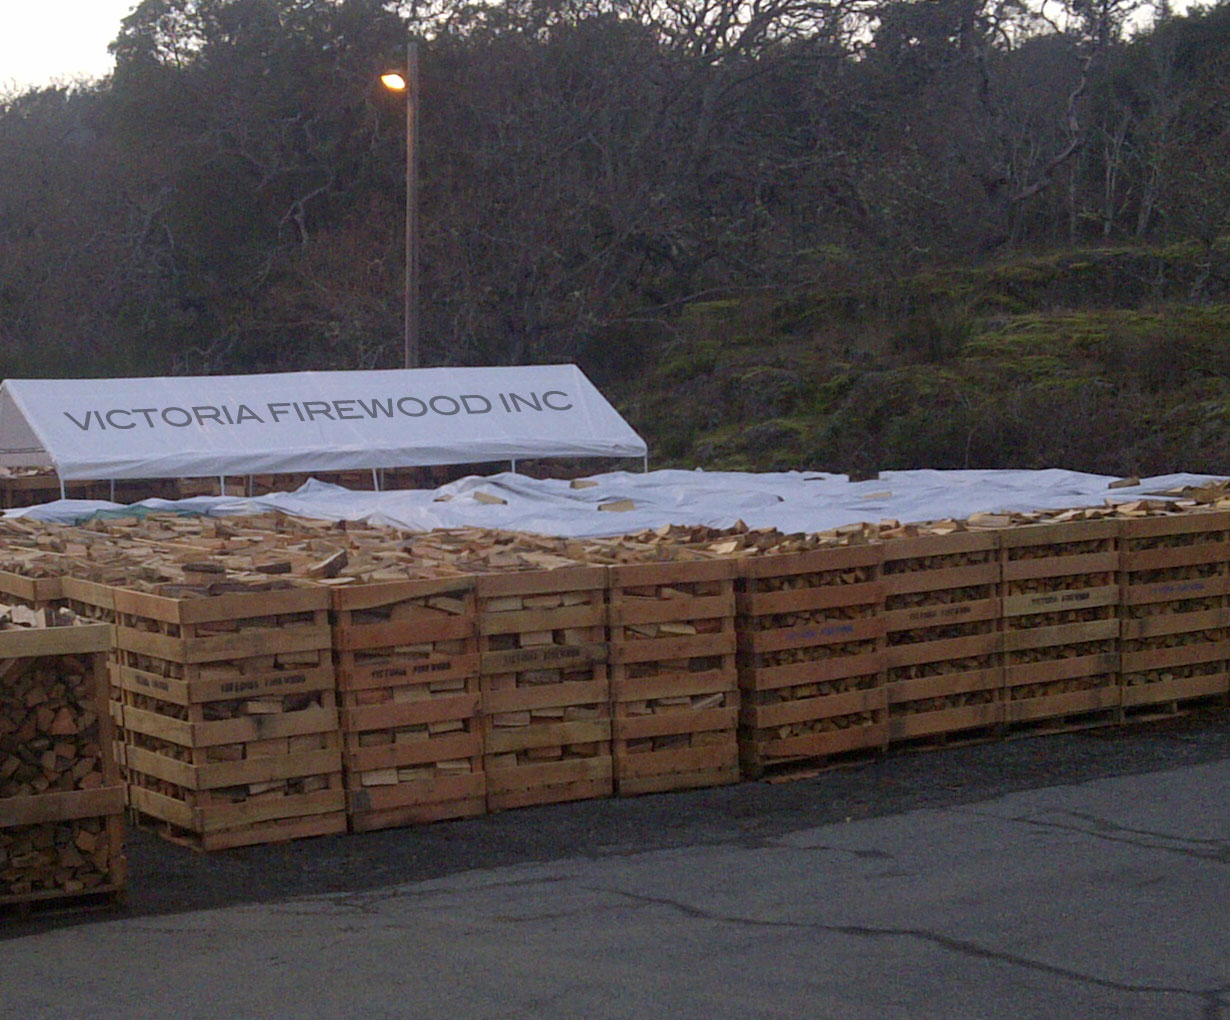 Victoria Firewood Inc   Firewood for Sale in Victoria, BC